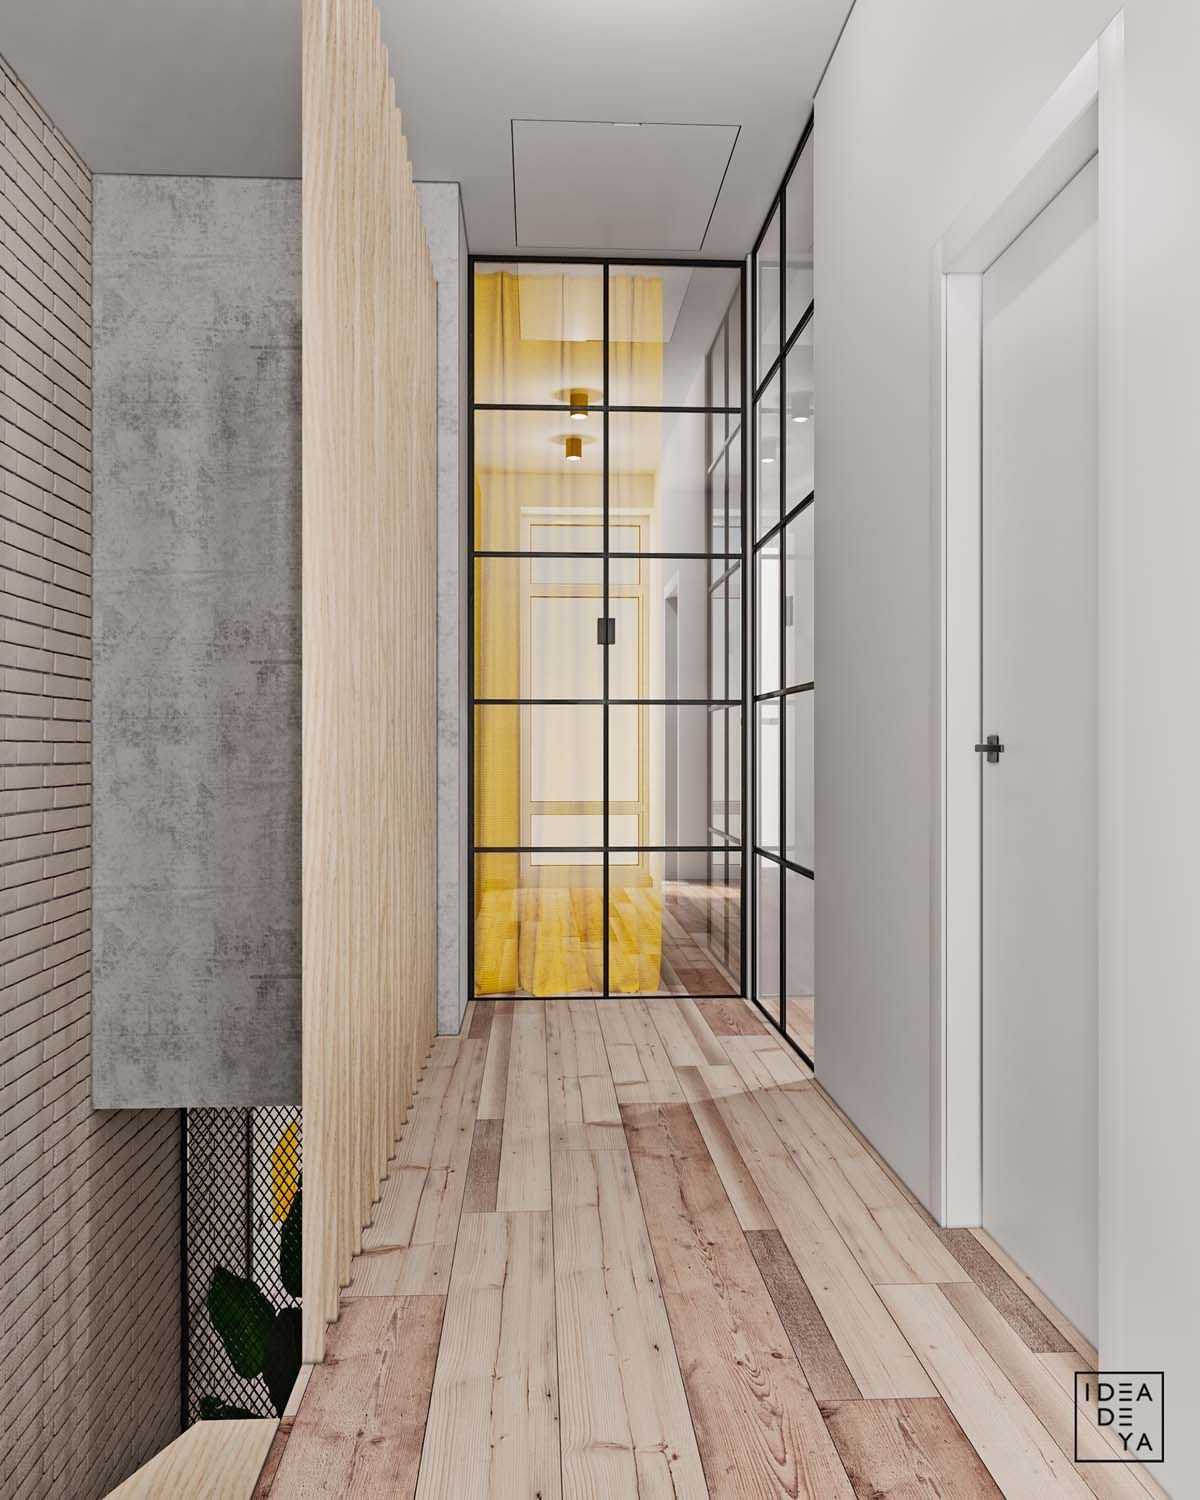 Superb This 114 Sqm (1227 Sqft) Home Based In Lviv, Ukraine Uses Small Pops Of  Bright Colour To Lift A Neutral Backdrop. Visualised By IDEADEYA Design  Studio, ...